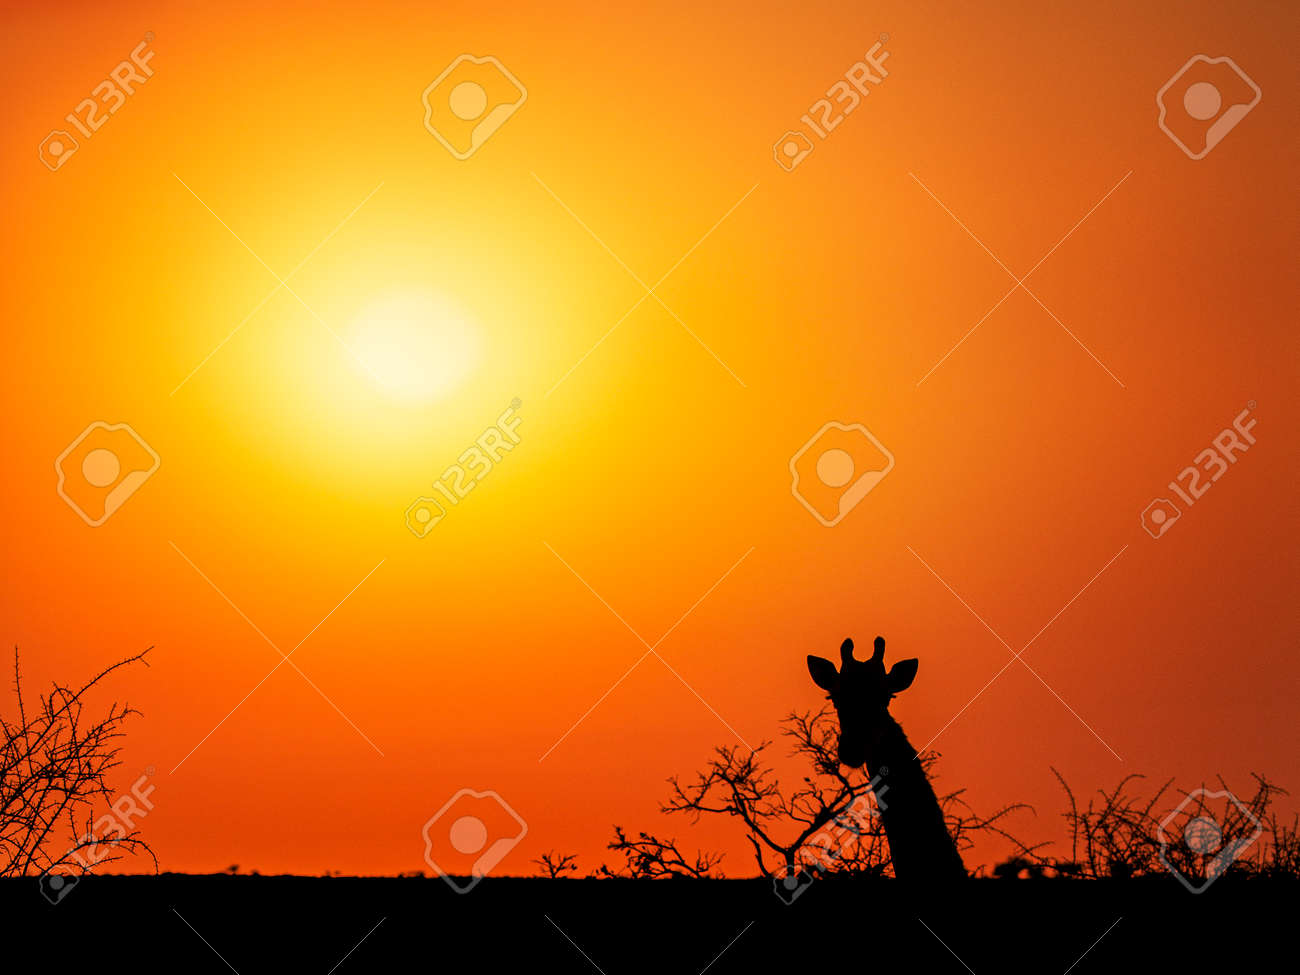 Orange sunset in South Africa landscape with silhouette of giraffe looking towards camera and some branches - 155126025